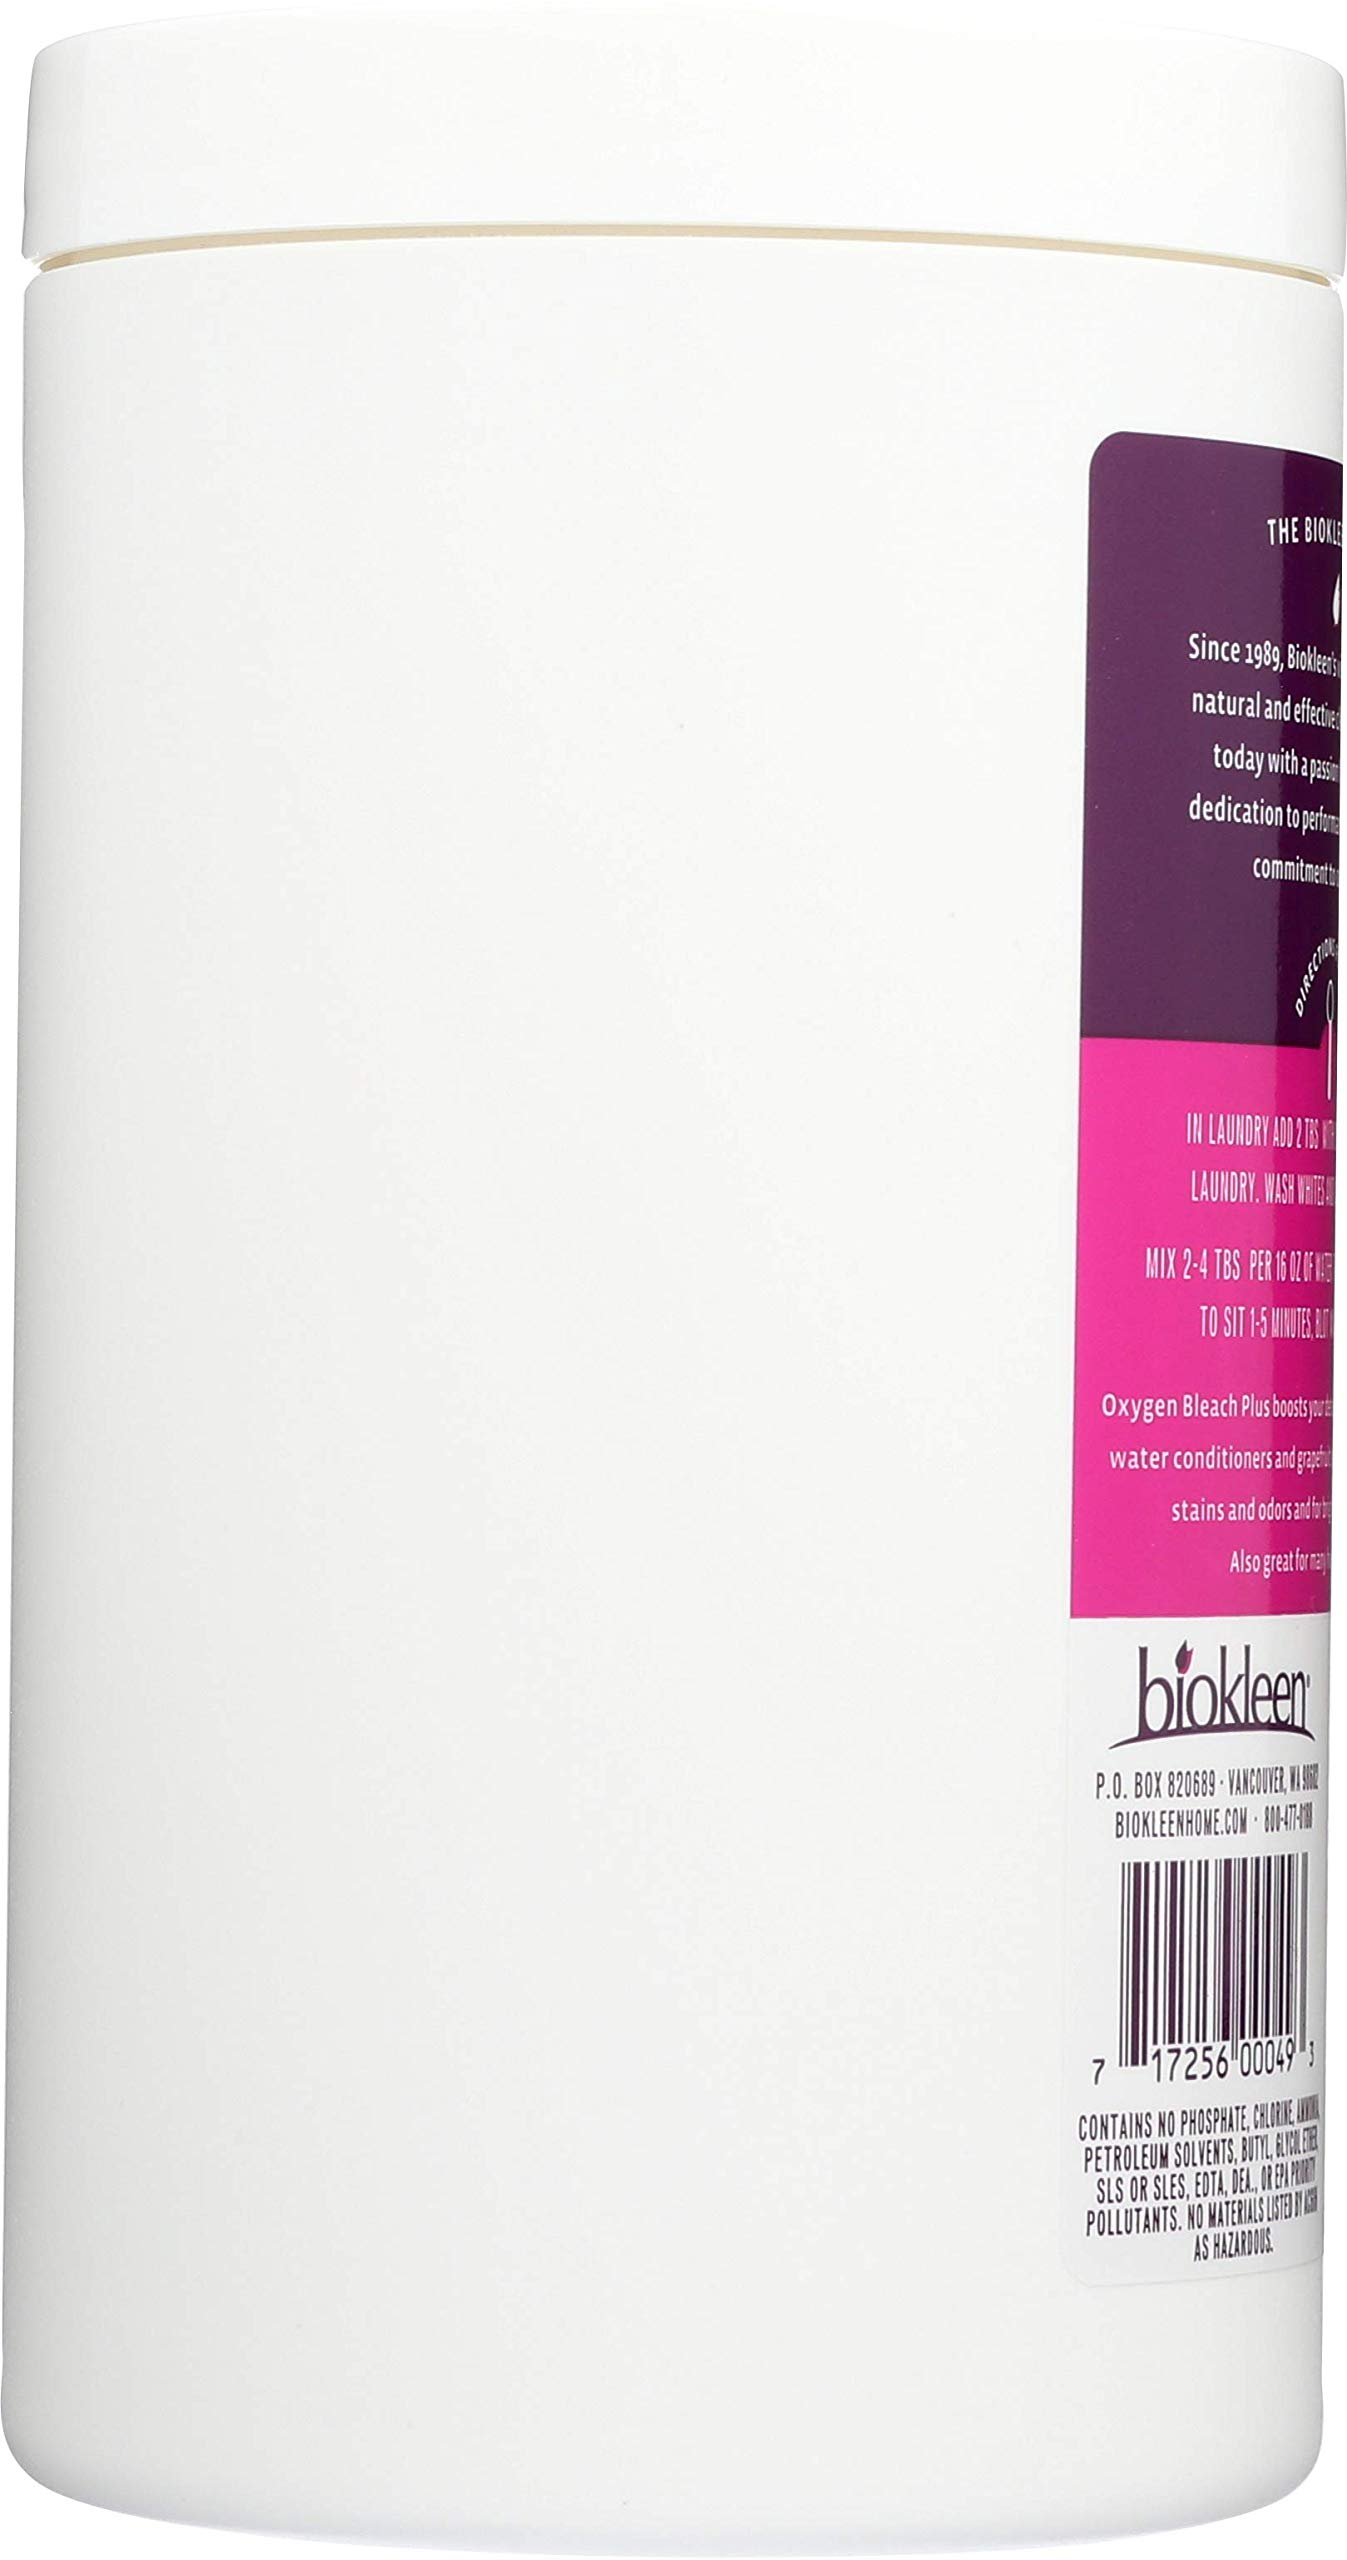 Biokleen Laundry Oxygen Bleach Plus, Concentrated Stain Remover, Whitens & Brightens, Eco-Friendly, Non-Toxic, Plant-Based, No Artificial Fragrance or Preservatives, 2 Pounds, 32 HE Loads (Pack of 12) by Biokleen (Image #4)